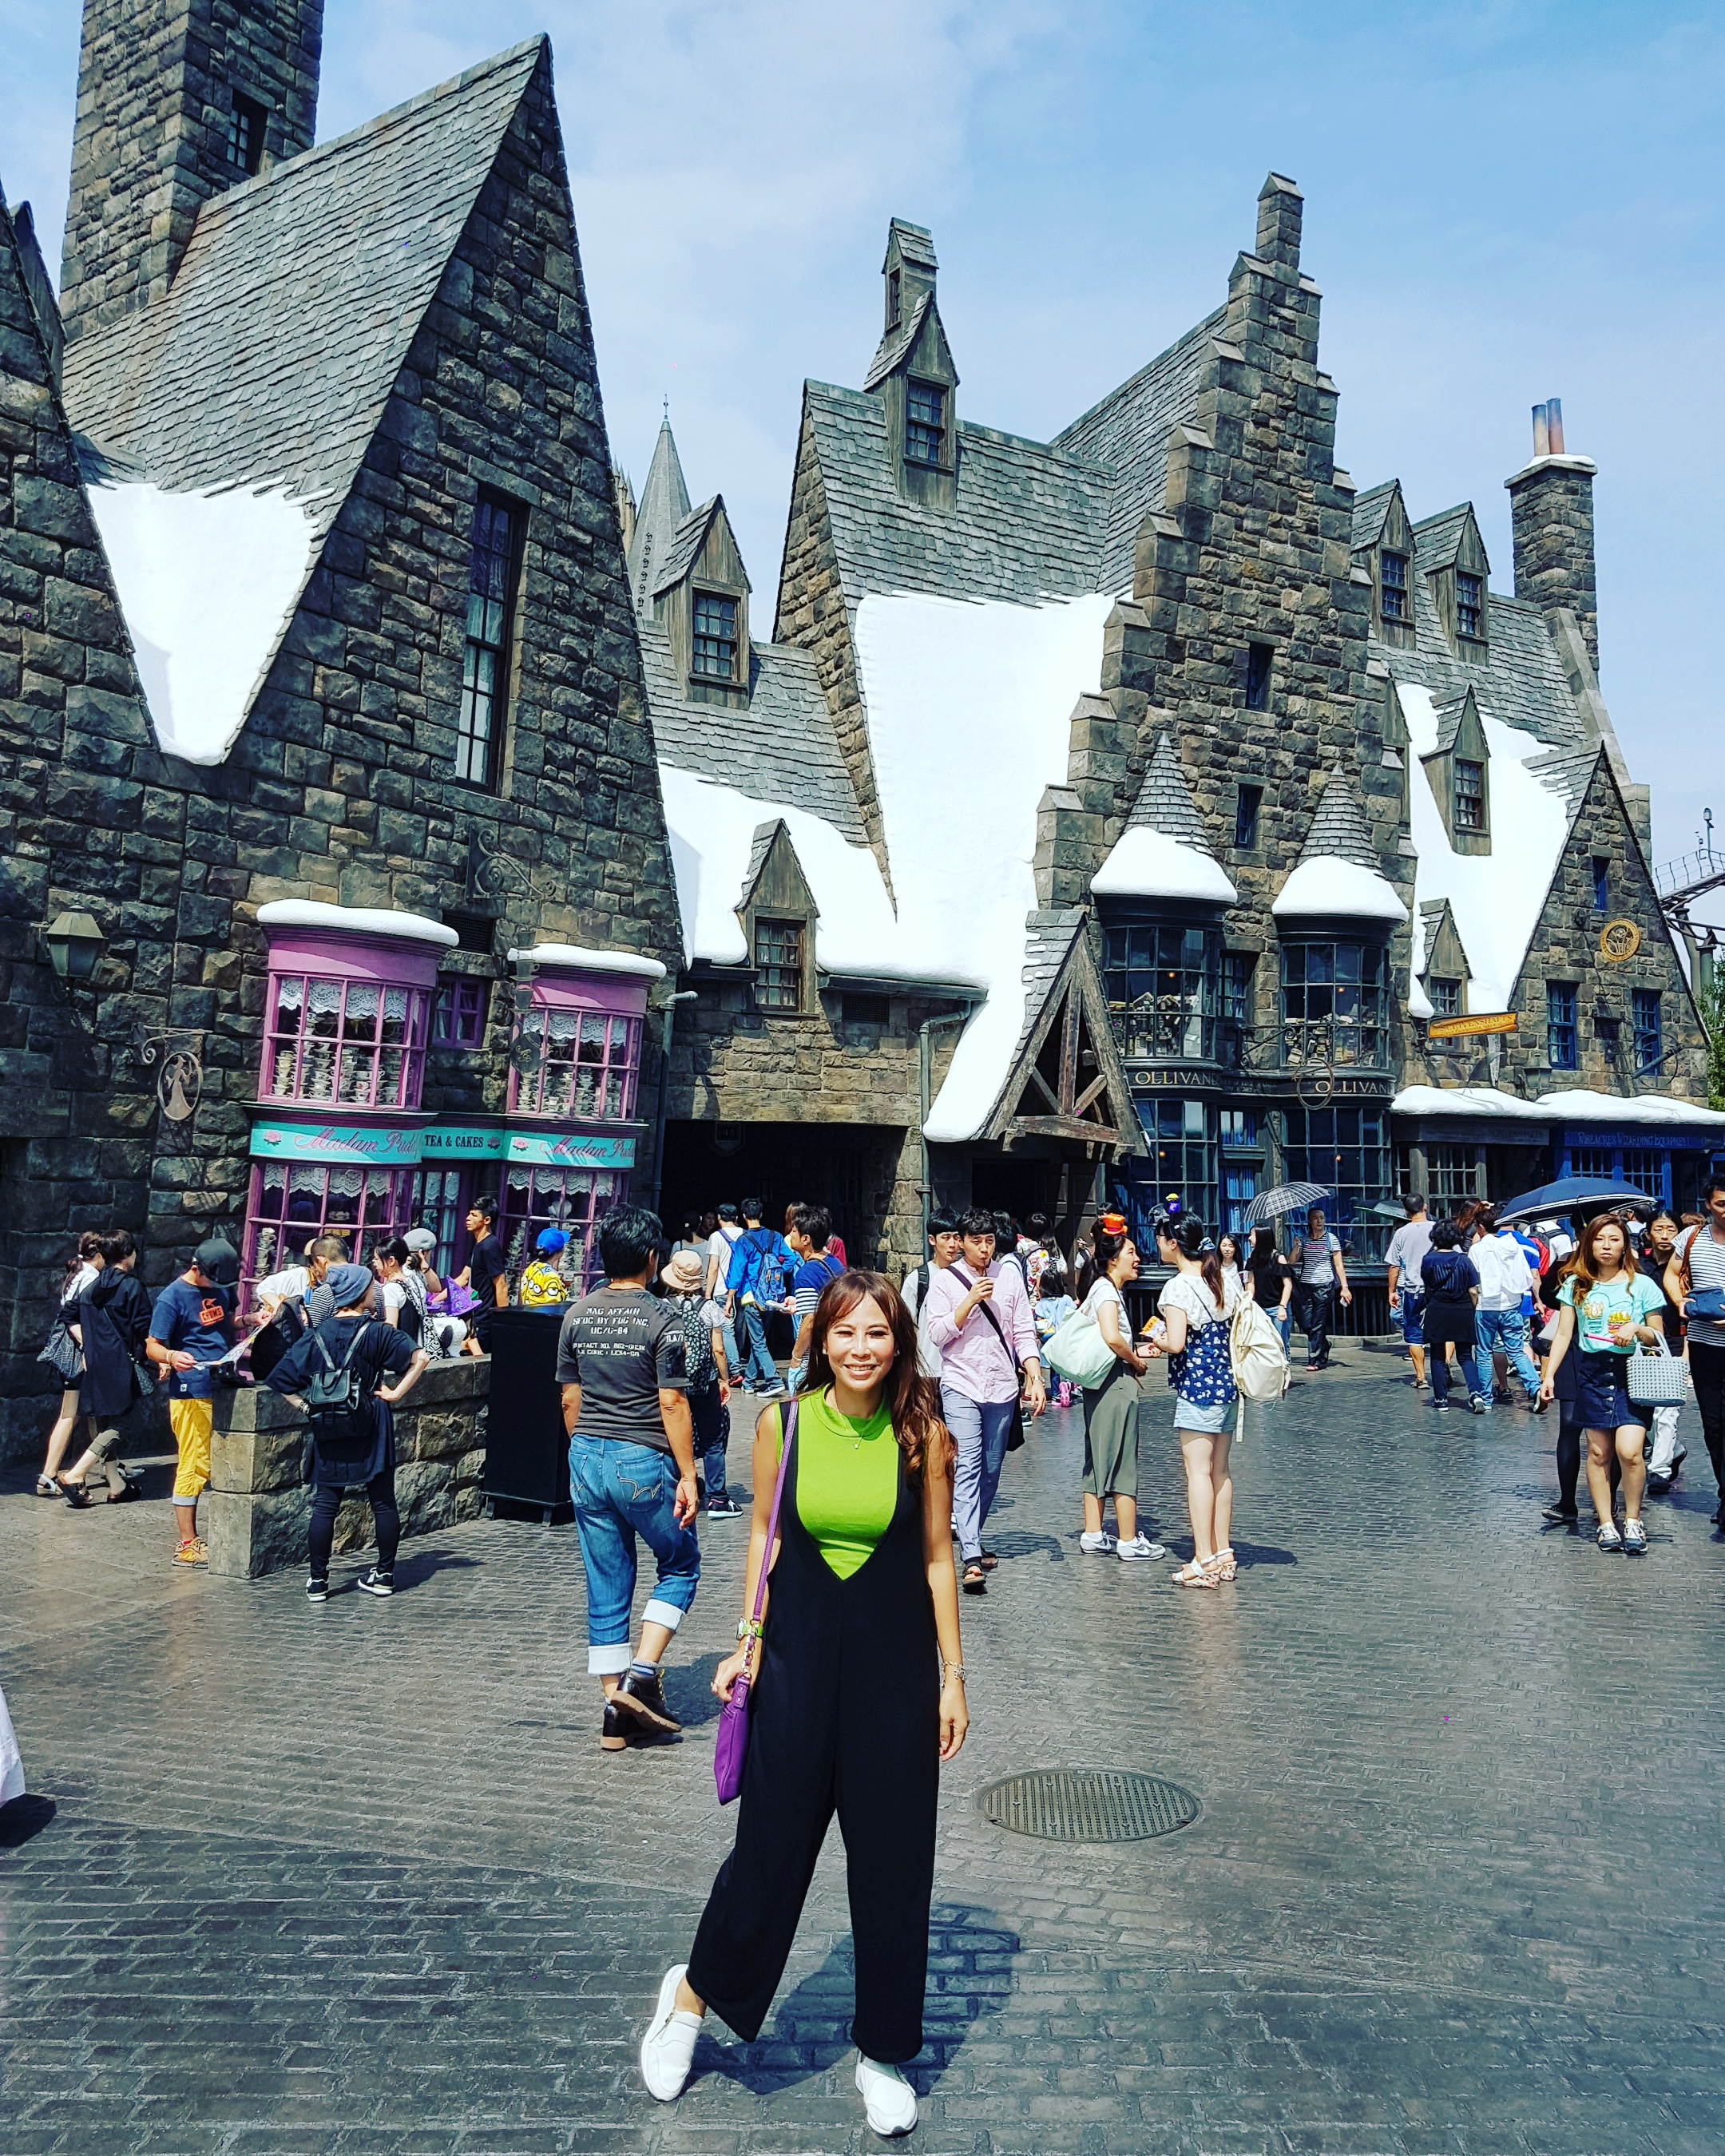 Hanging out in Hogsmeade!